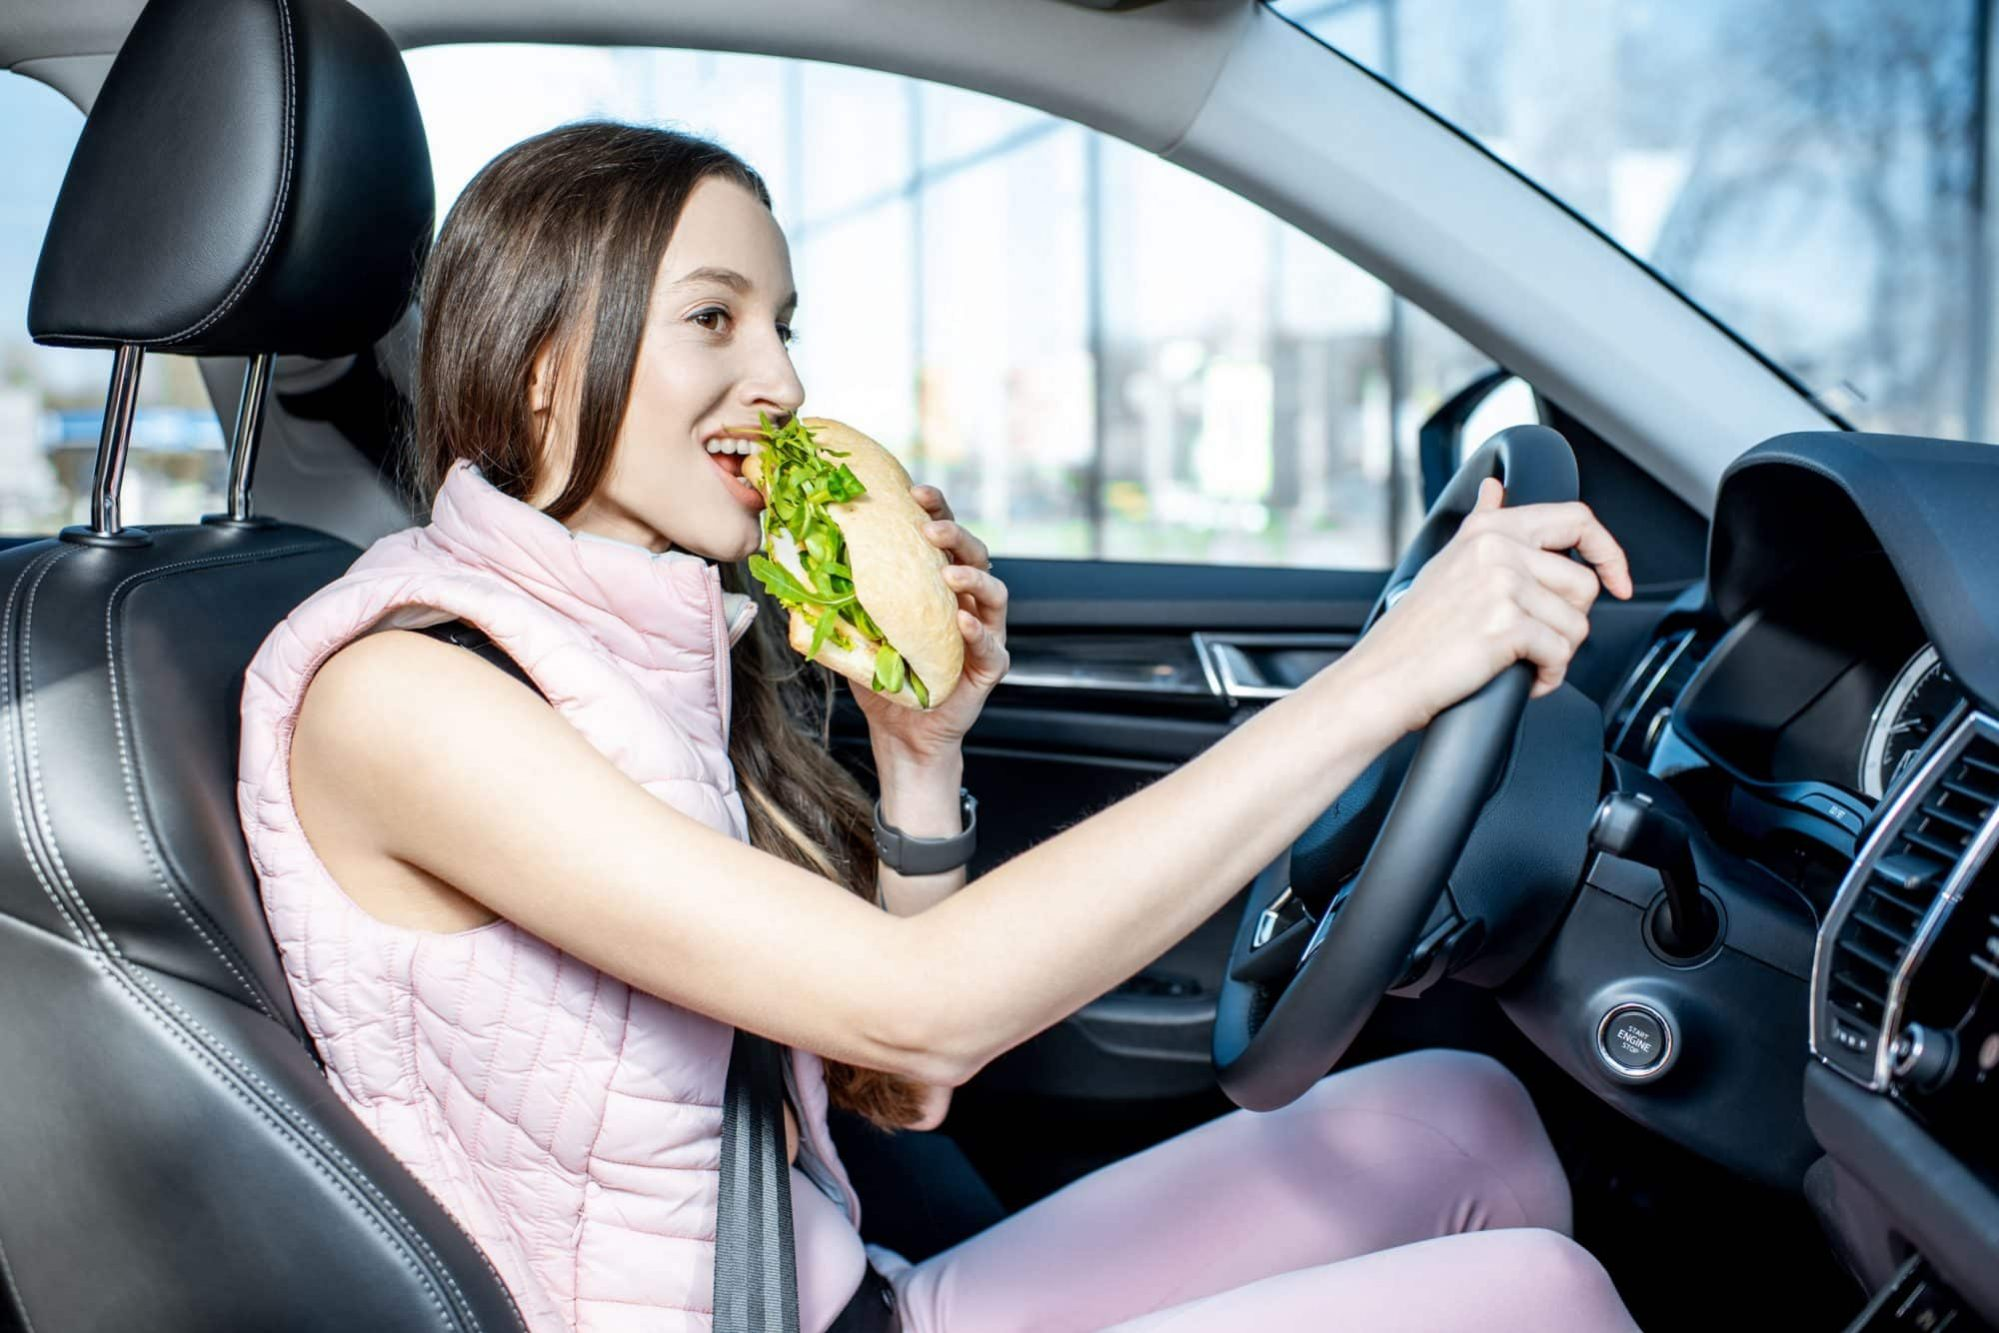 Young woman in Michigan eating while driving a vehicle